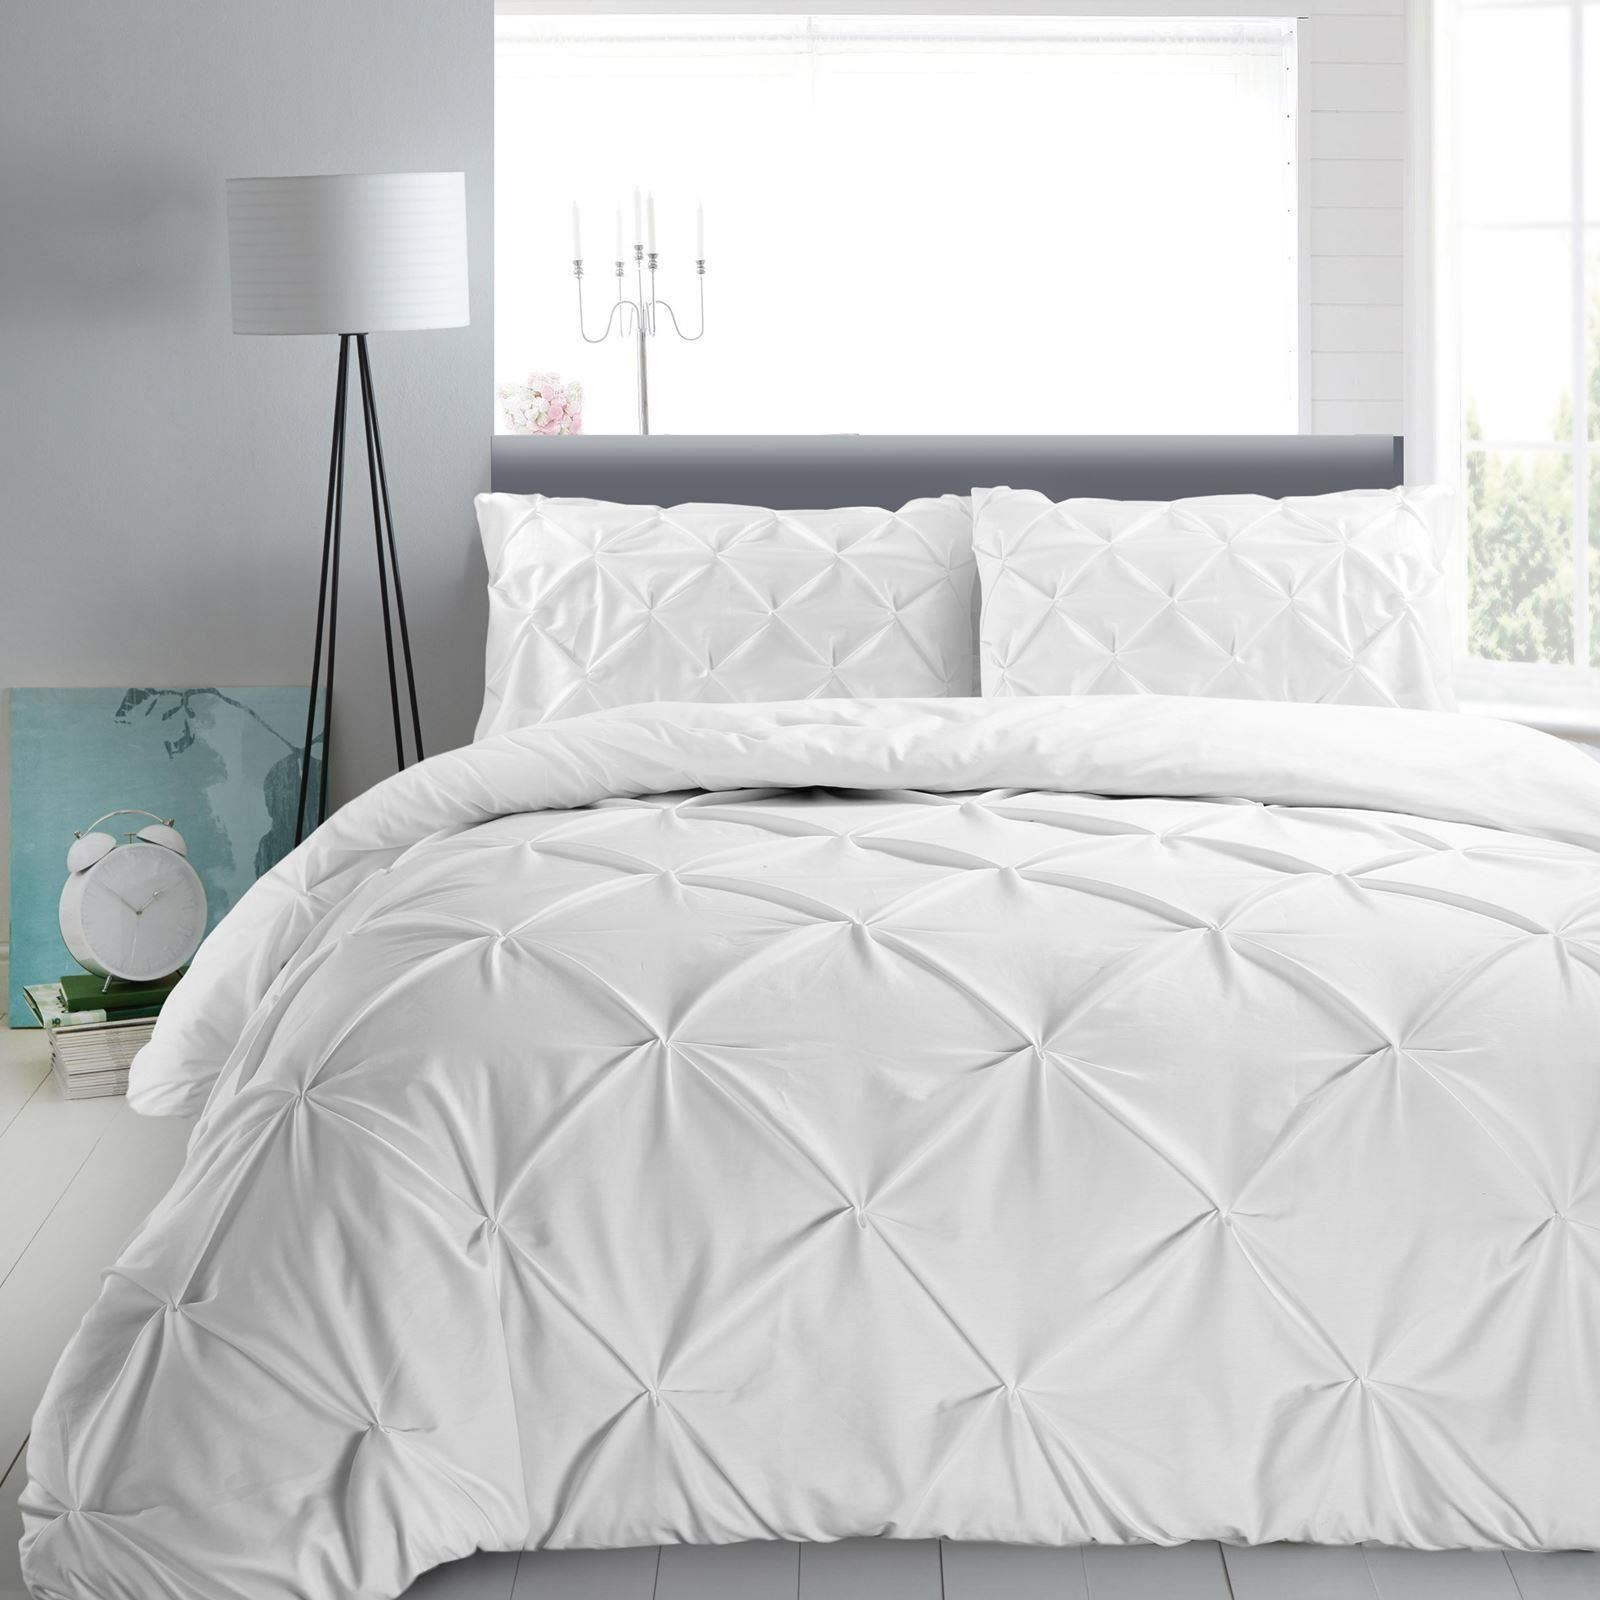 pintuck pleated duvet cover with pillowcase bedding set single double super king ebay